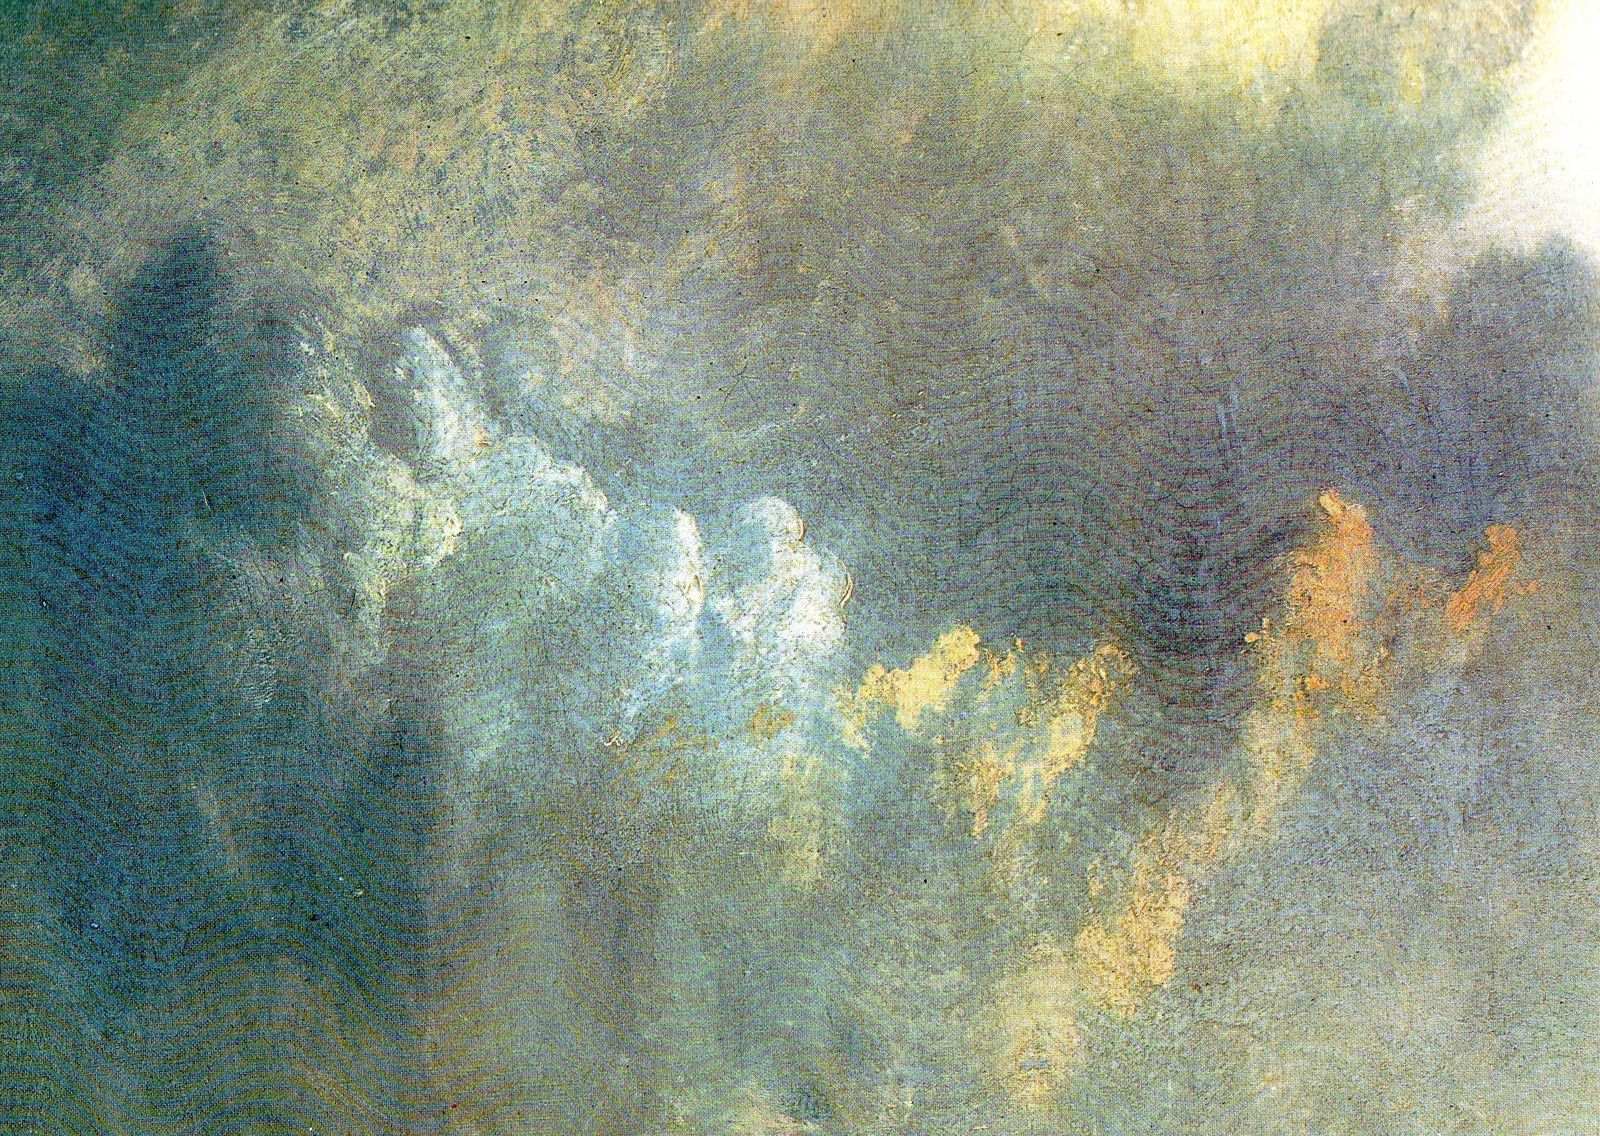 Mouth of the Seine at Quillebeuf (1833). Détail d'une œuvre de J.M.W.Turner reproduite dans Turner en France, Centre Culturel du Marais, 1981. Cat. 187 (p. 604).